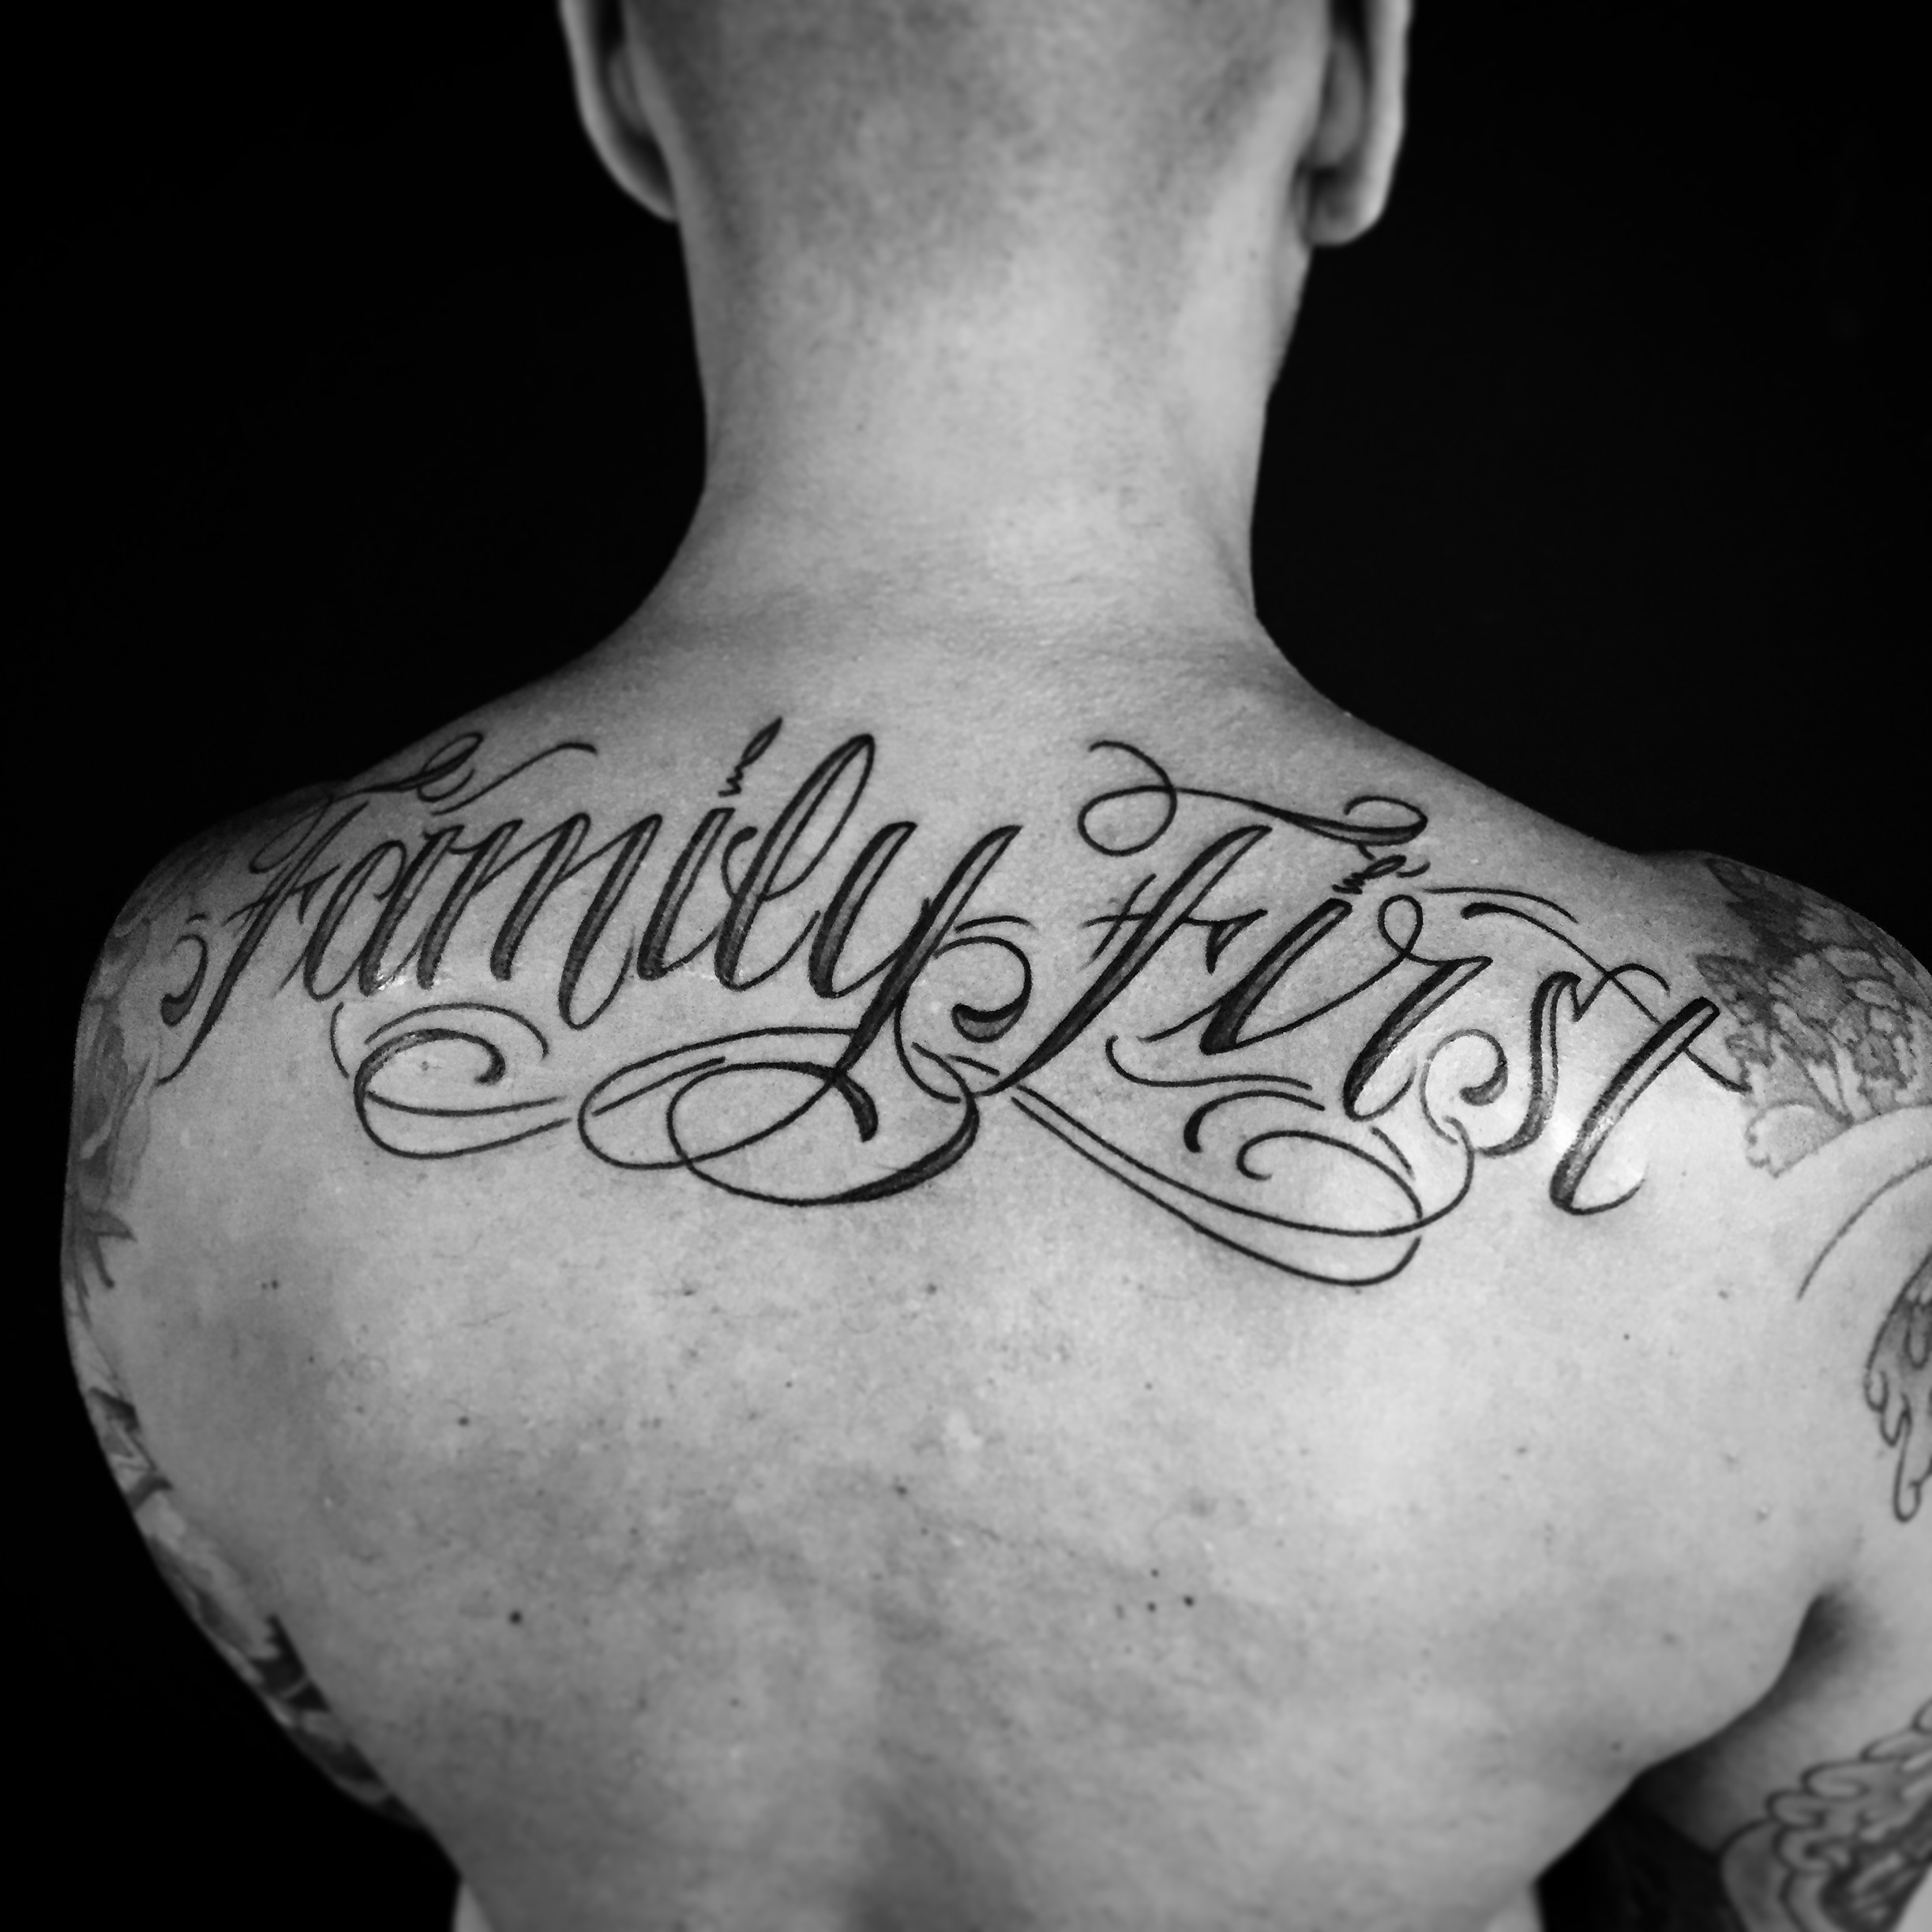 Calligraphy Tattoo Artist Toronto Tattoos Luke Wessman Self Made Tattoo Artist Luke Wessman